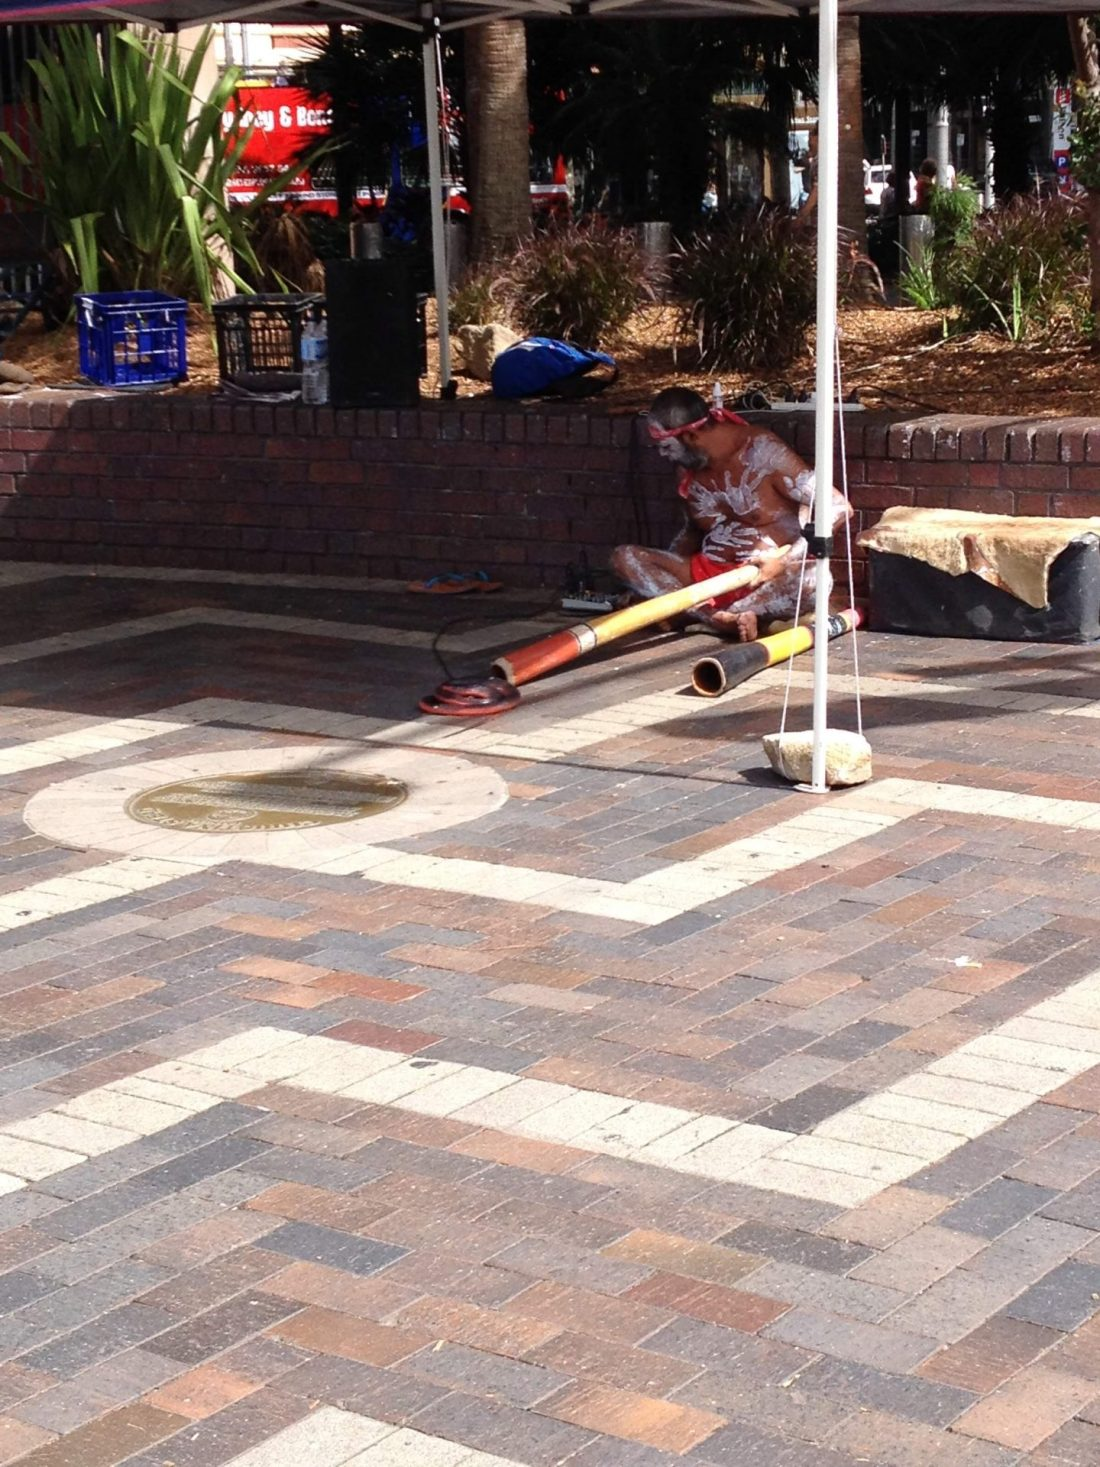 An aborigine playing the didgeridoo in Circular Quay